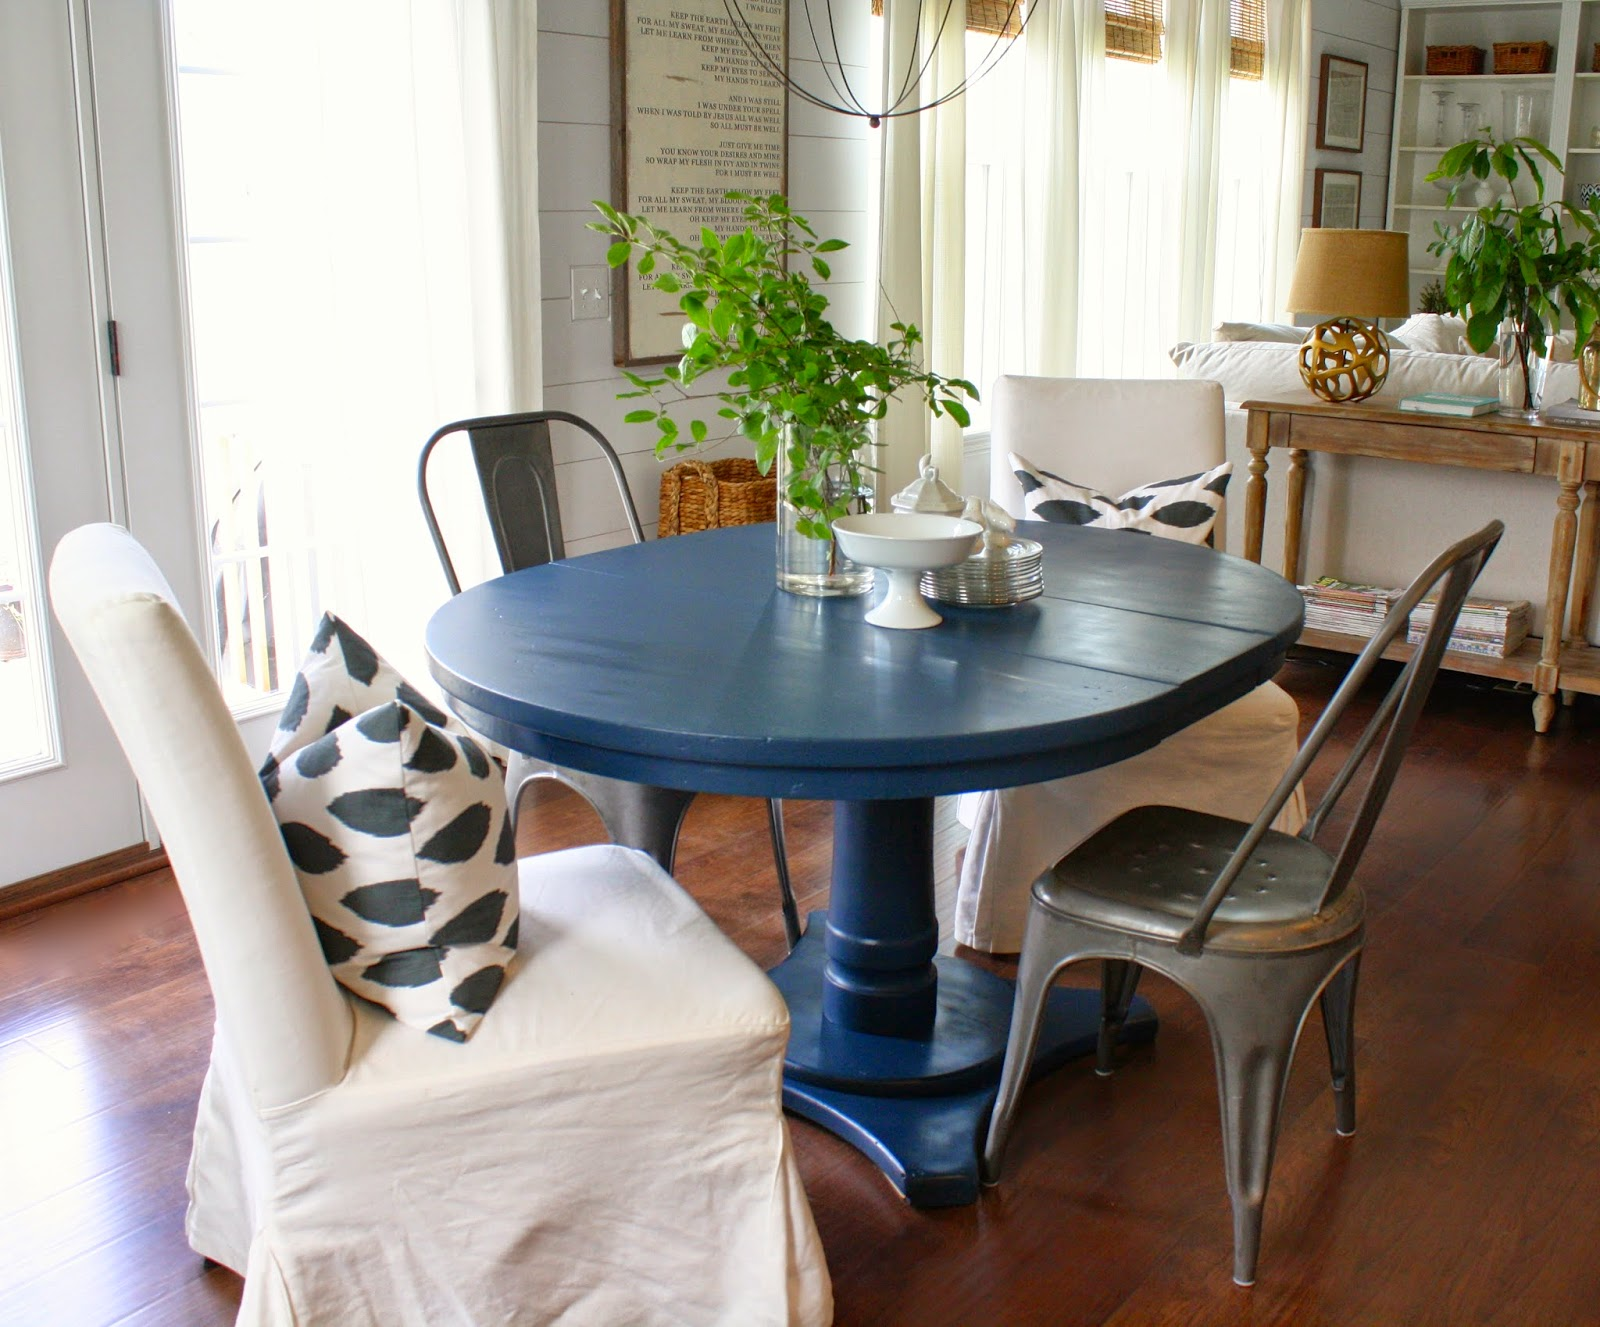 Navy Blue Dining Table | House Seven design+build